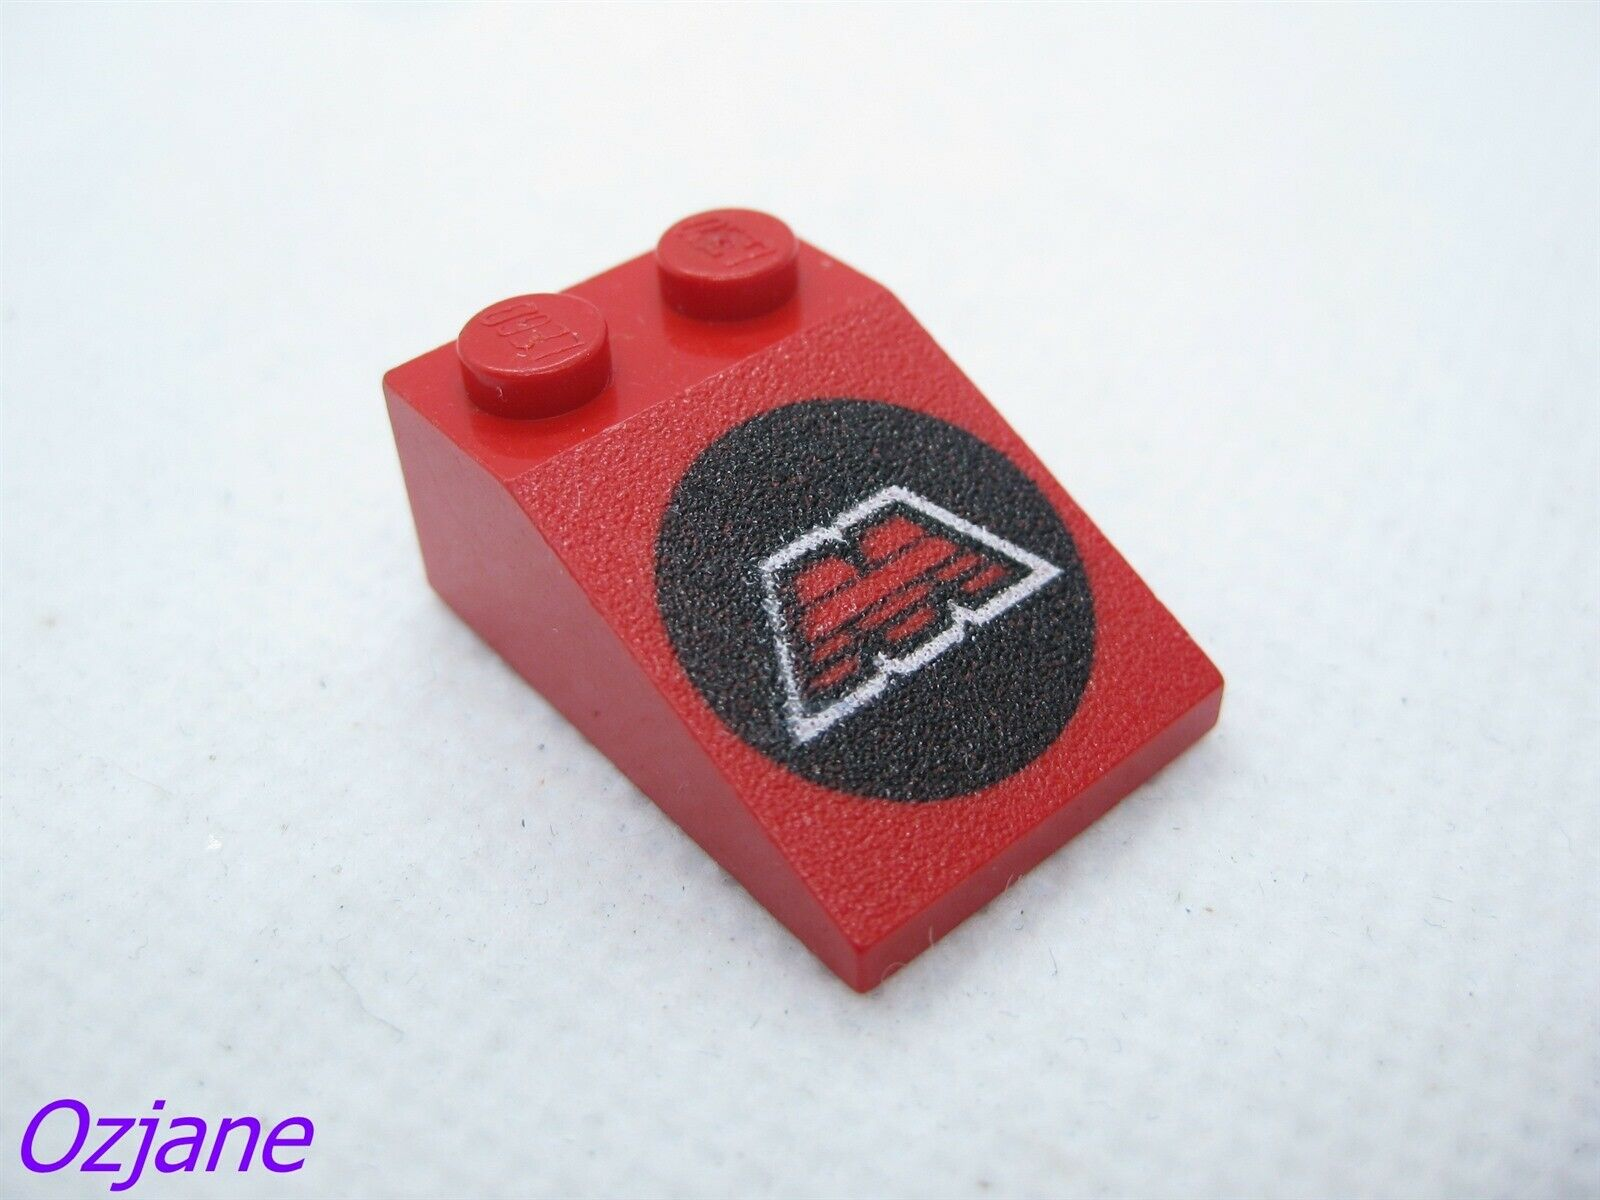 LEGO PART 3298P21 SLOPE 33 BLUE 3 X 2 WITH RED STARS X2 PIECES